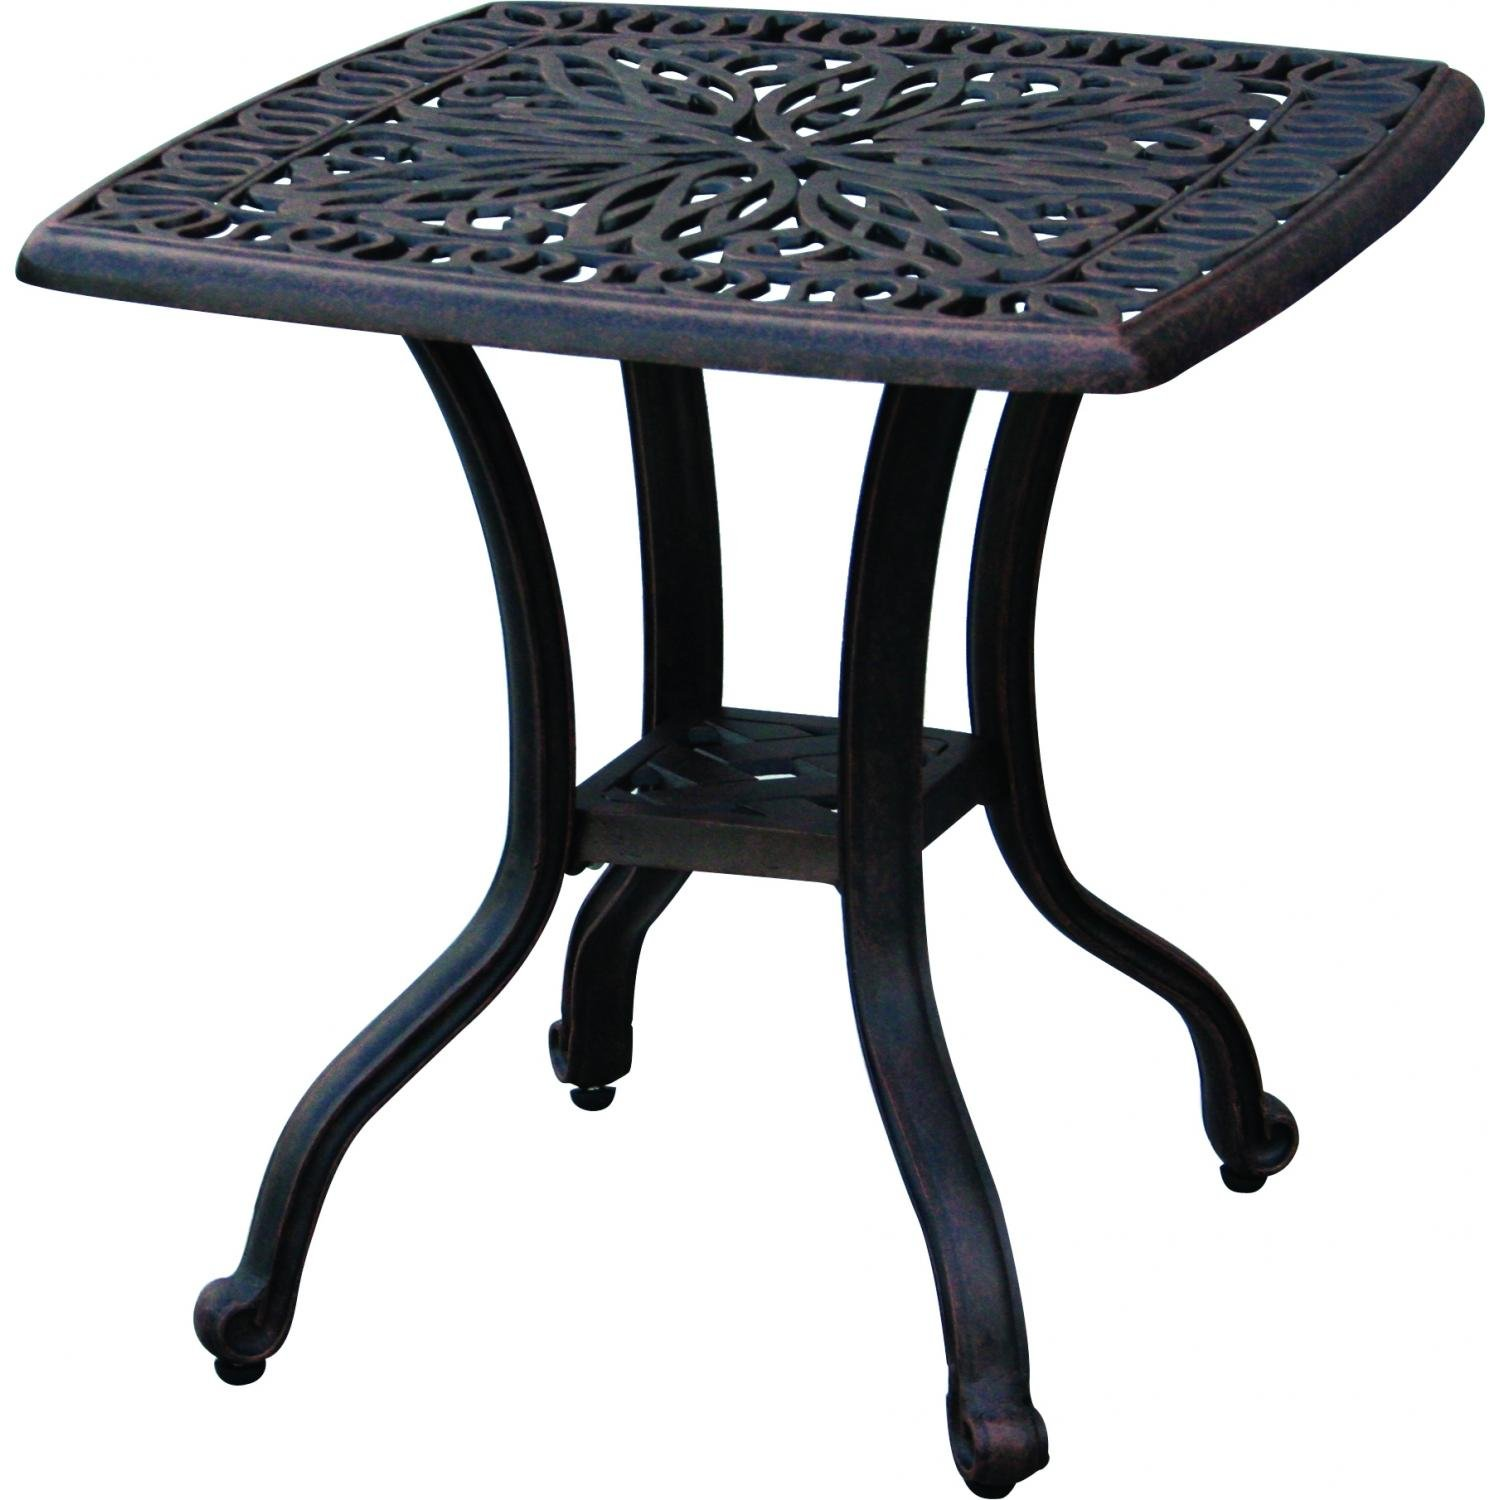 Amazon.com : Darlee Elisabeth Cast Aluminum Outdoor Patio End ...